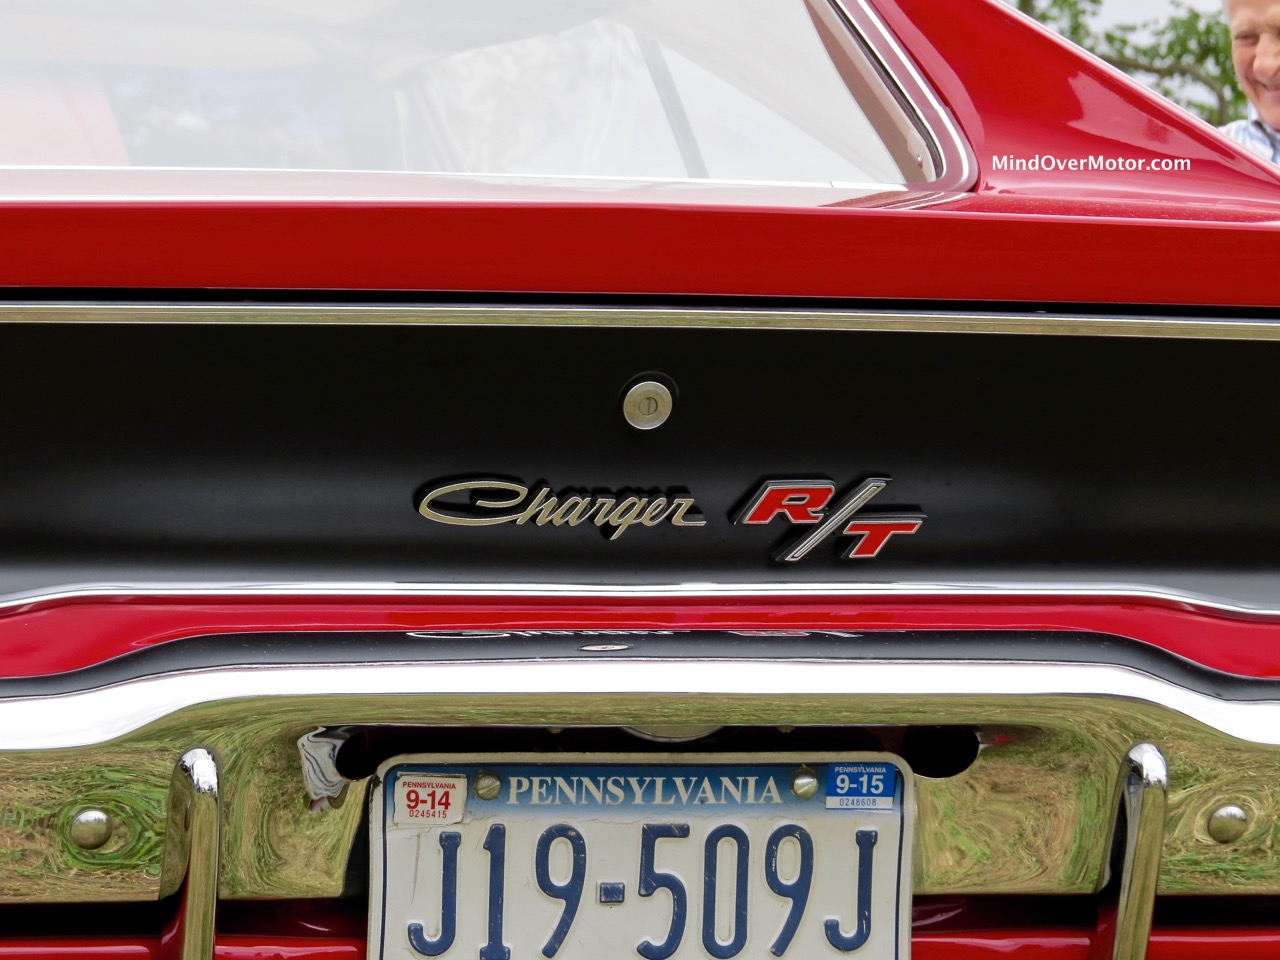 1968 Dodge Charger R:T Rear Finish Panel